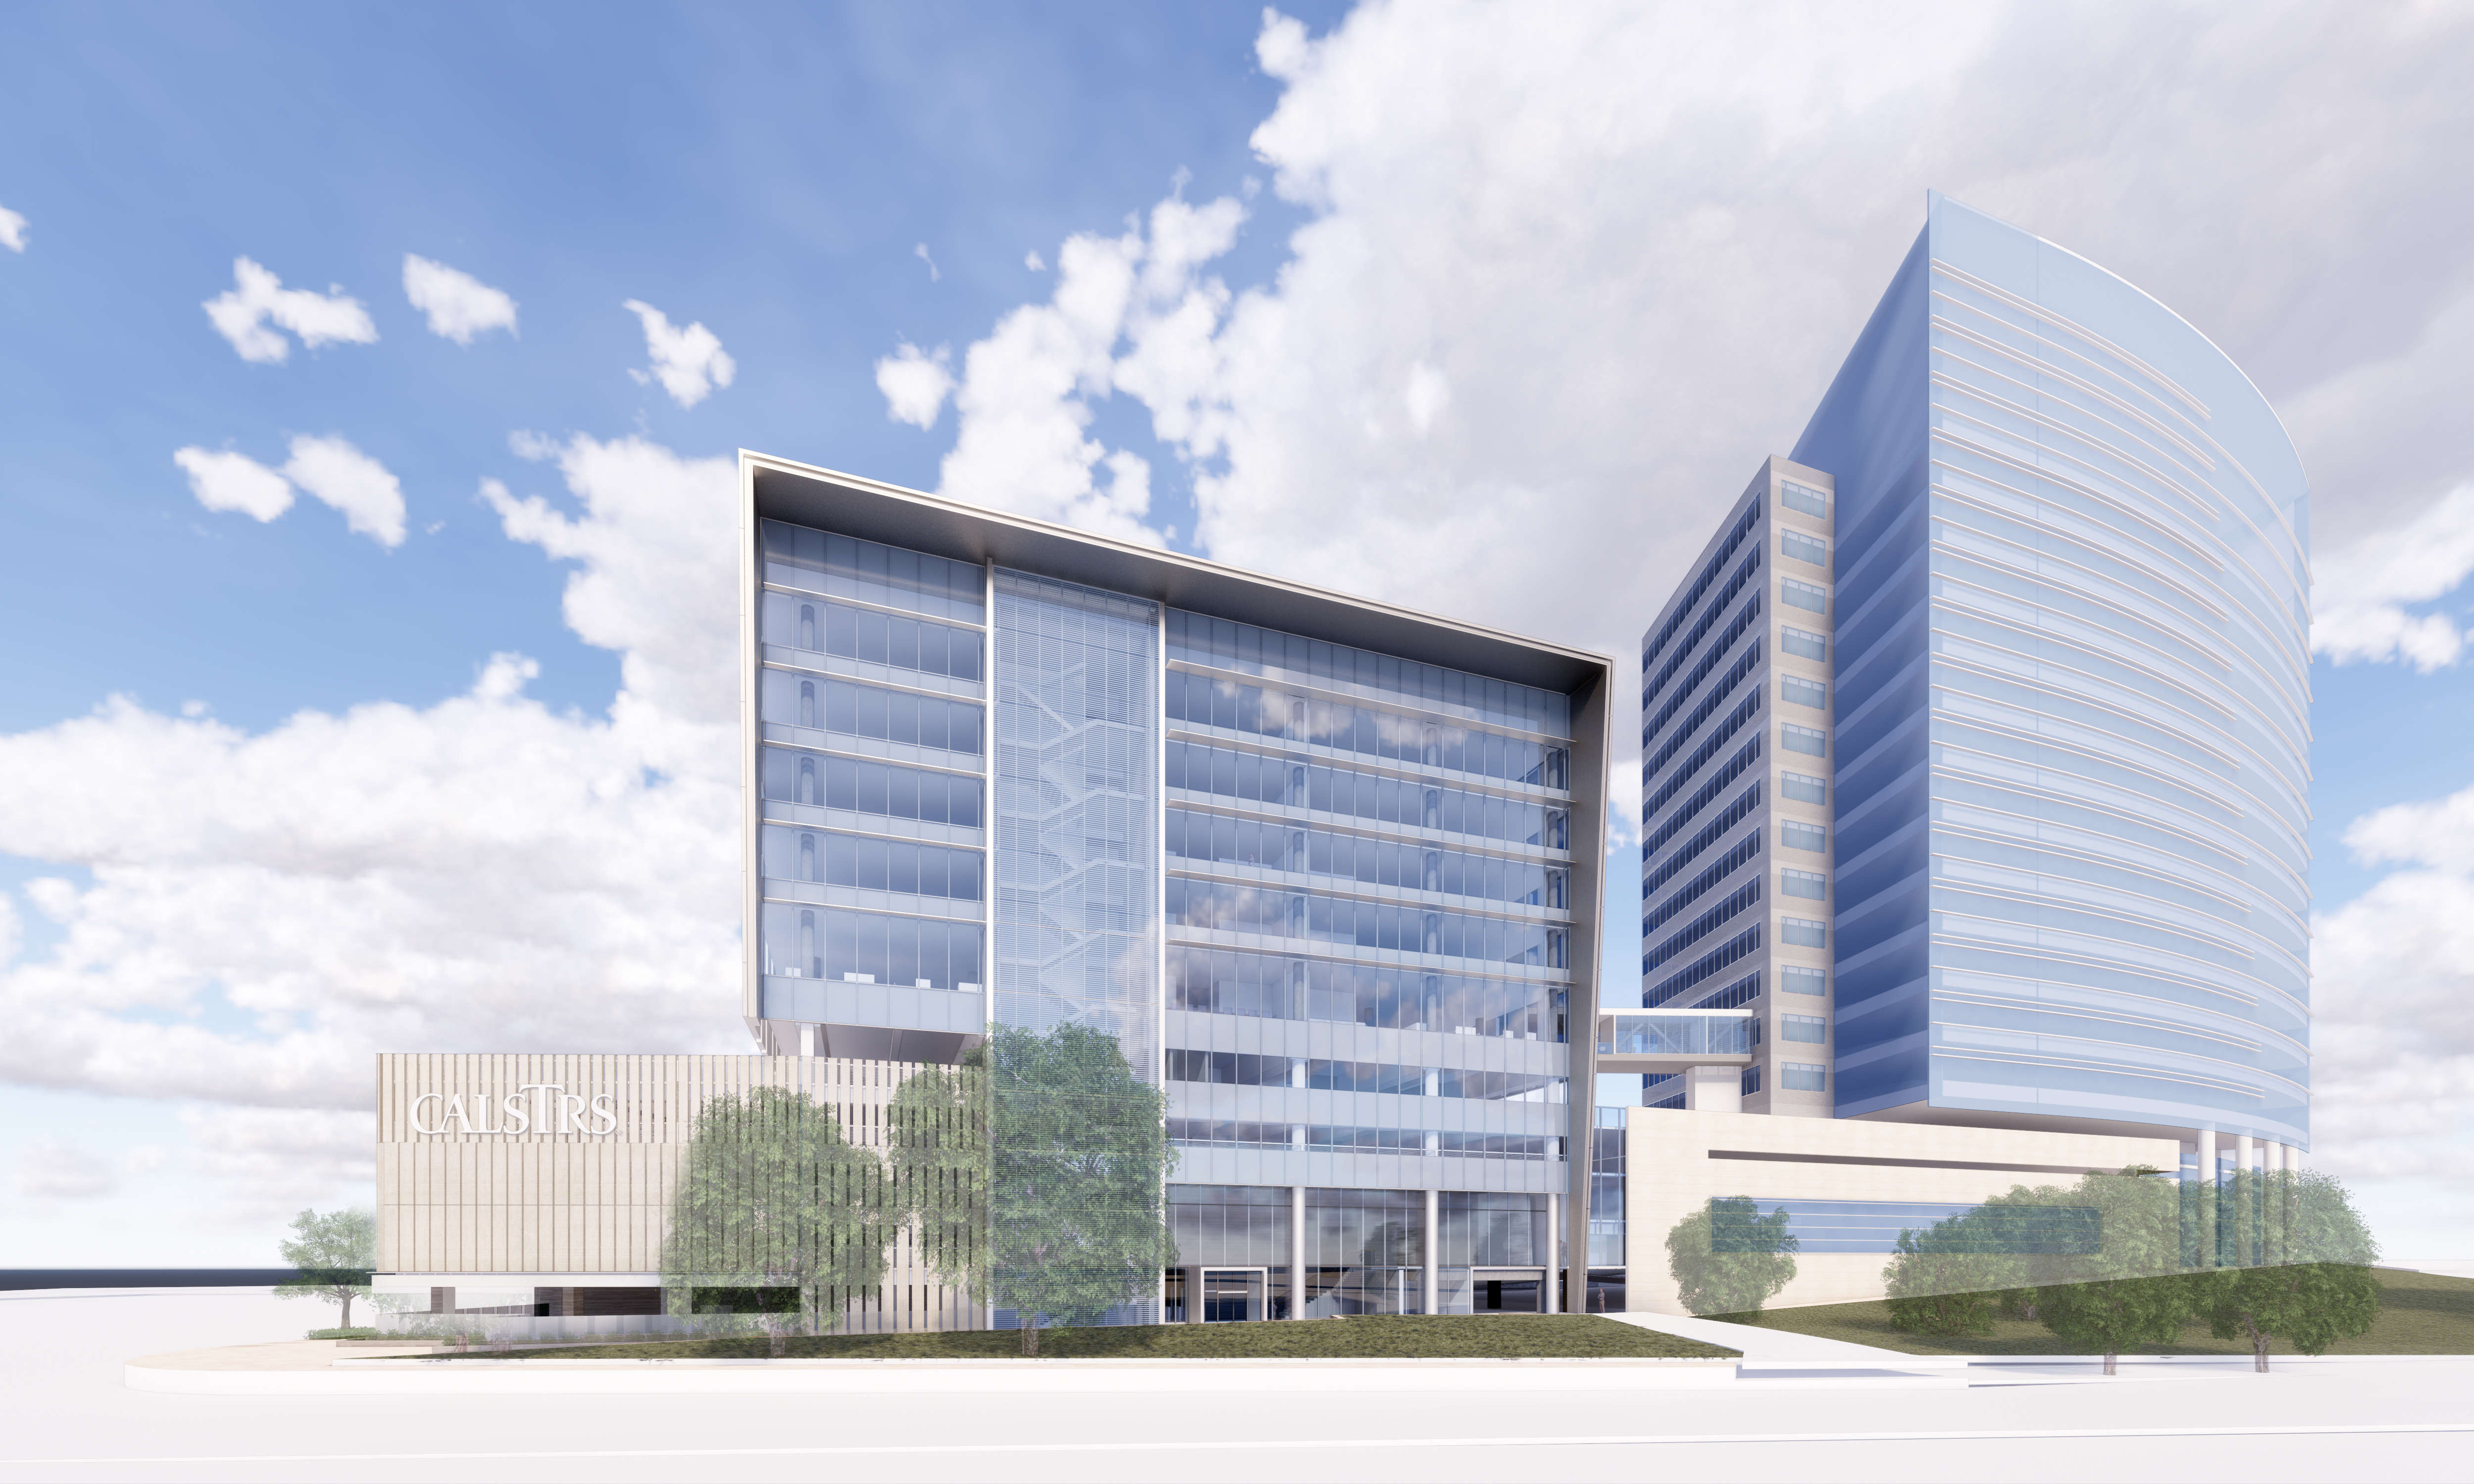 calstrs invests in planned expansion of its west sacramento